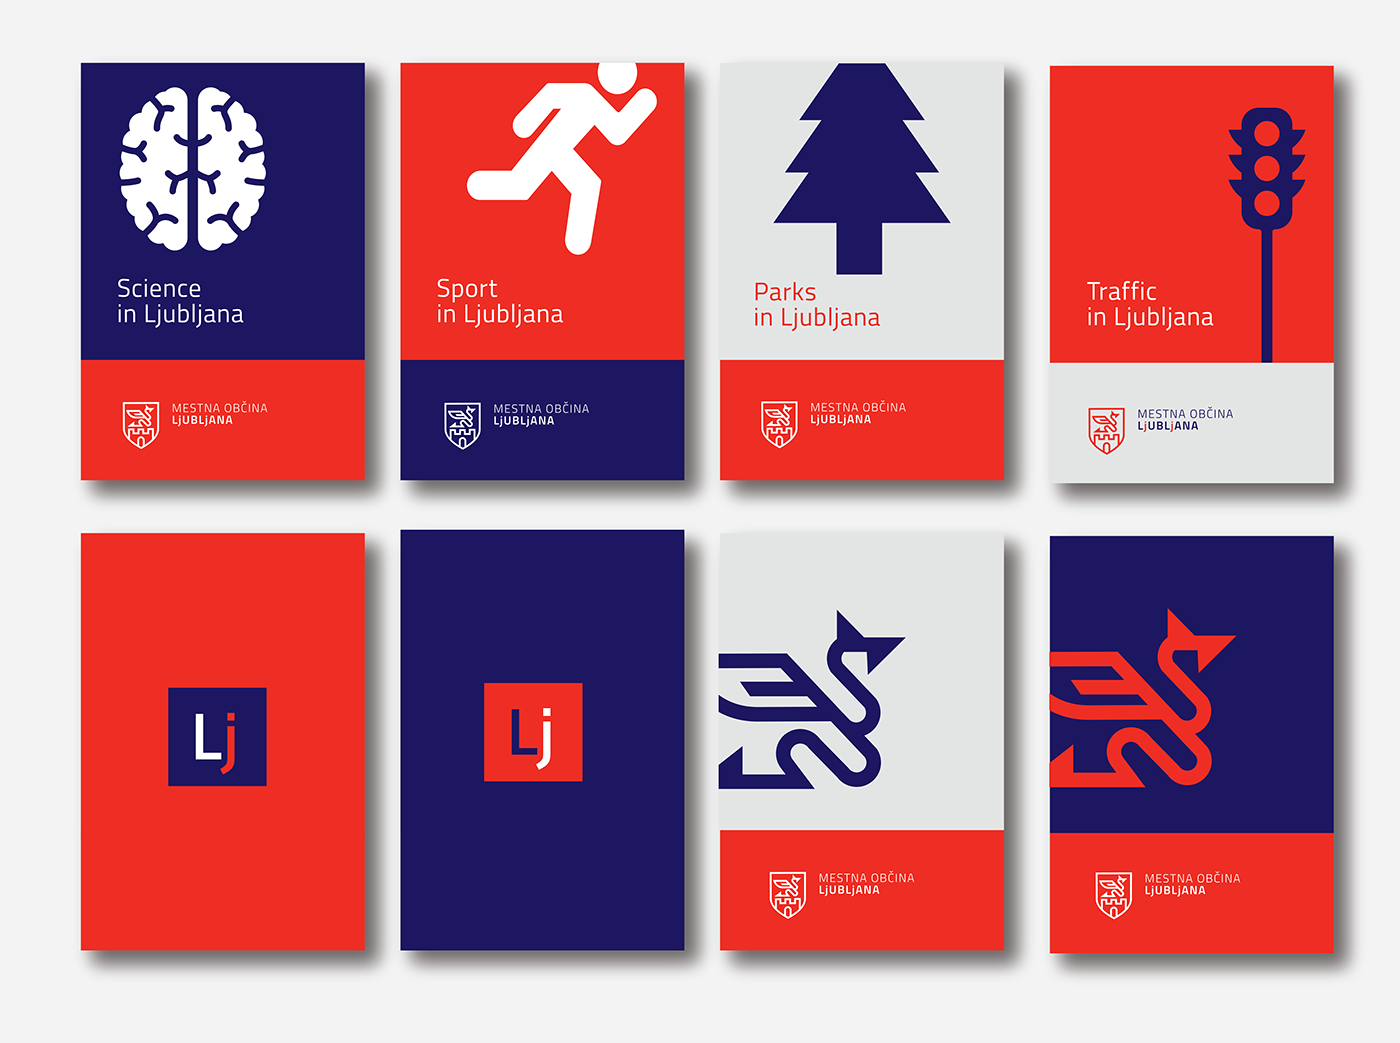 Gdesign, Gregor Ivanusic - The Coat of Arms And The Logo of The City of Ljubljana7.png